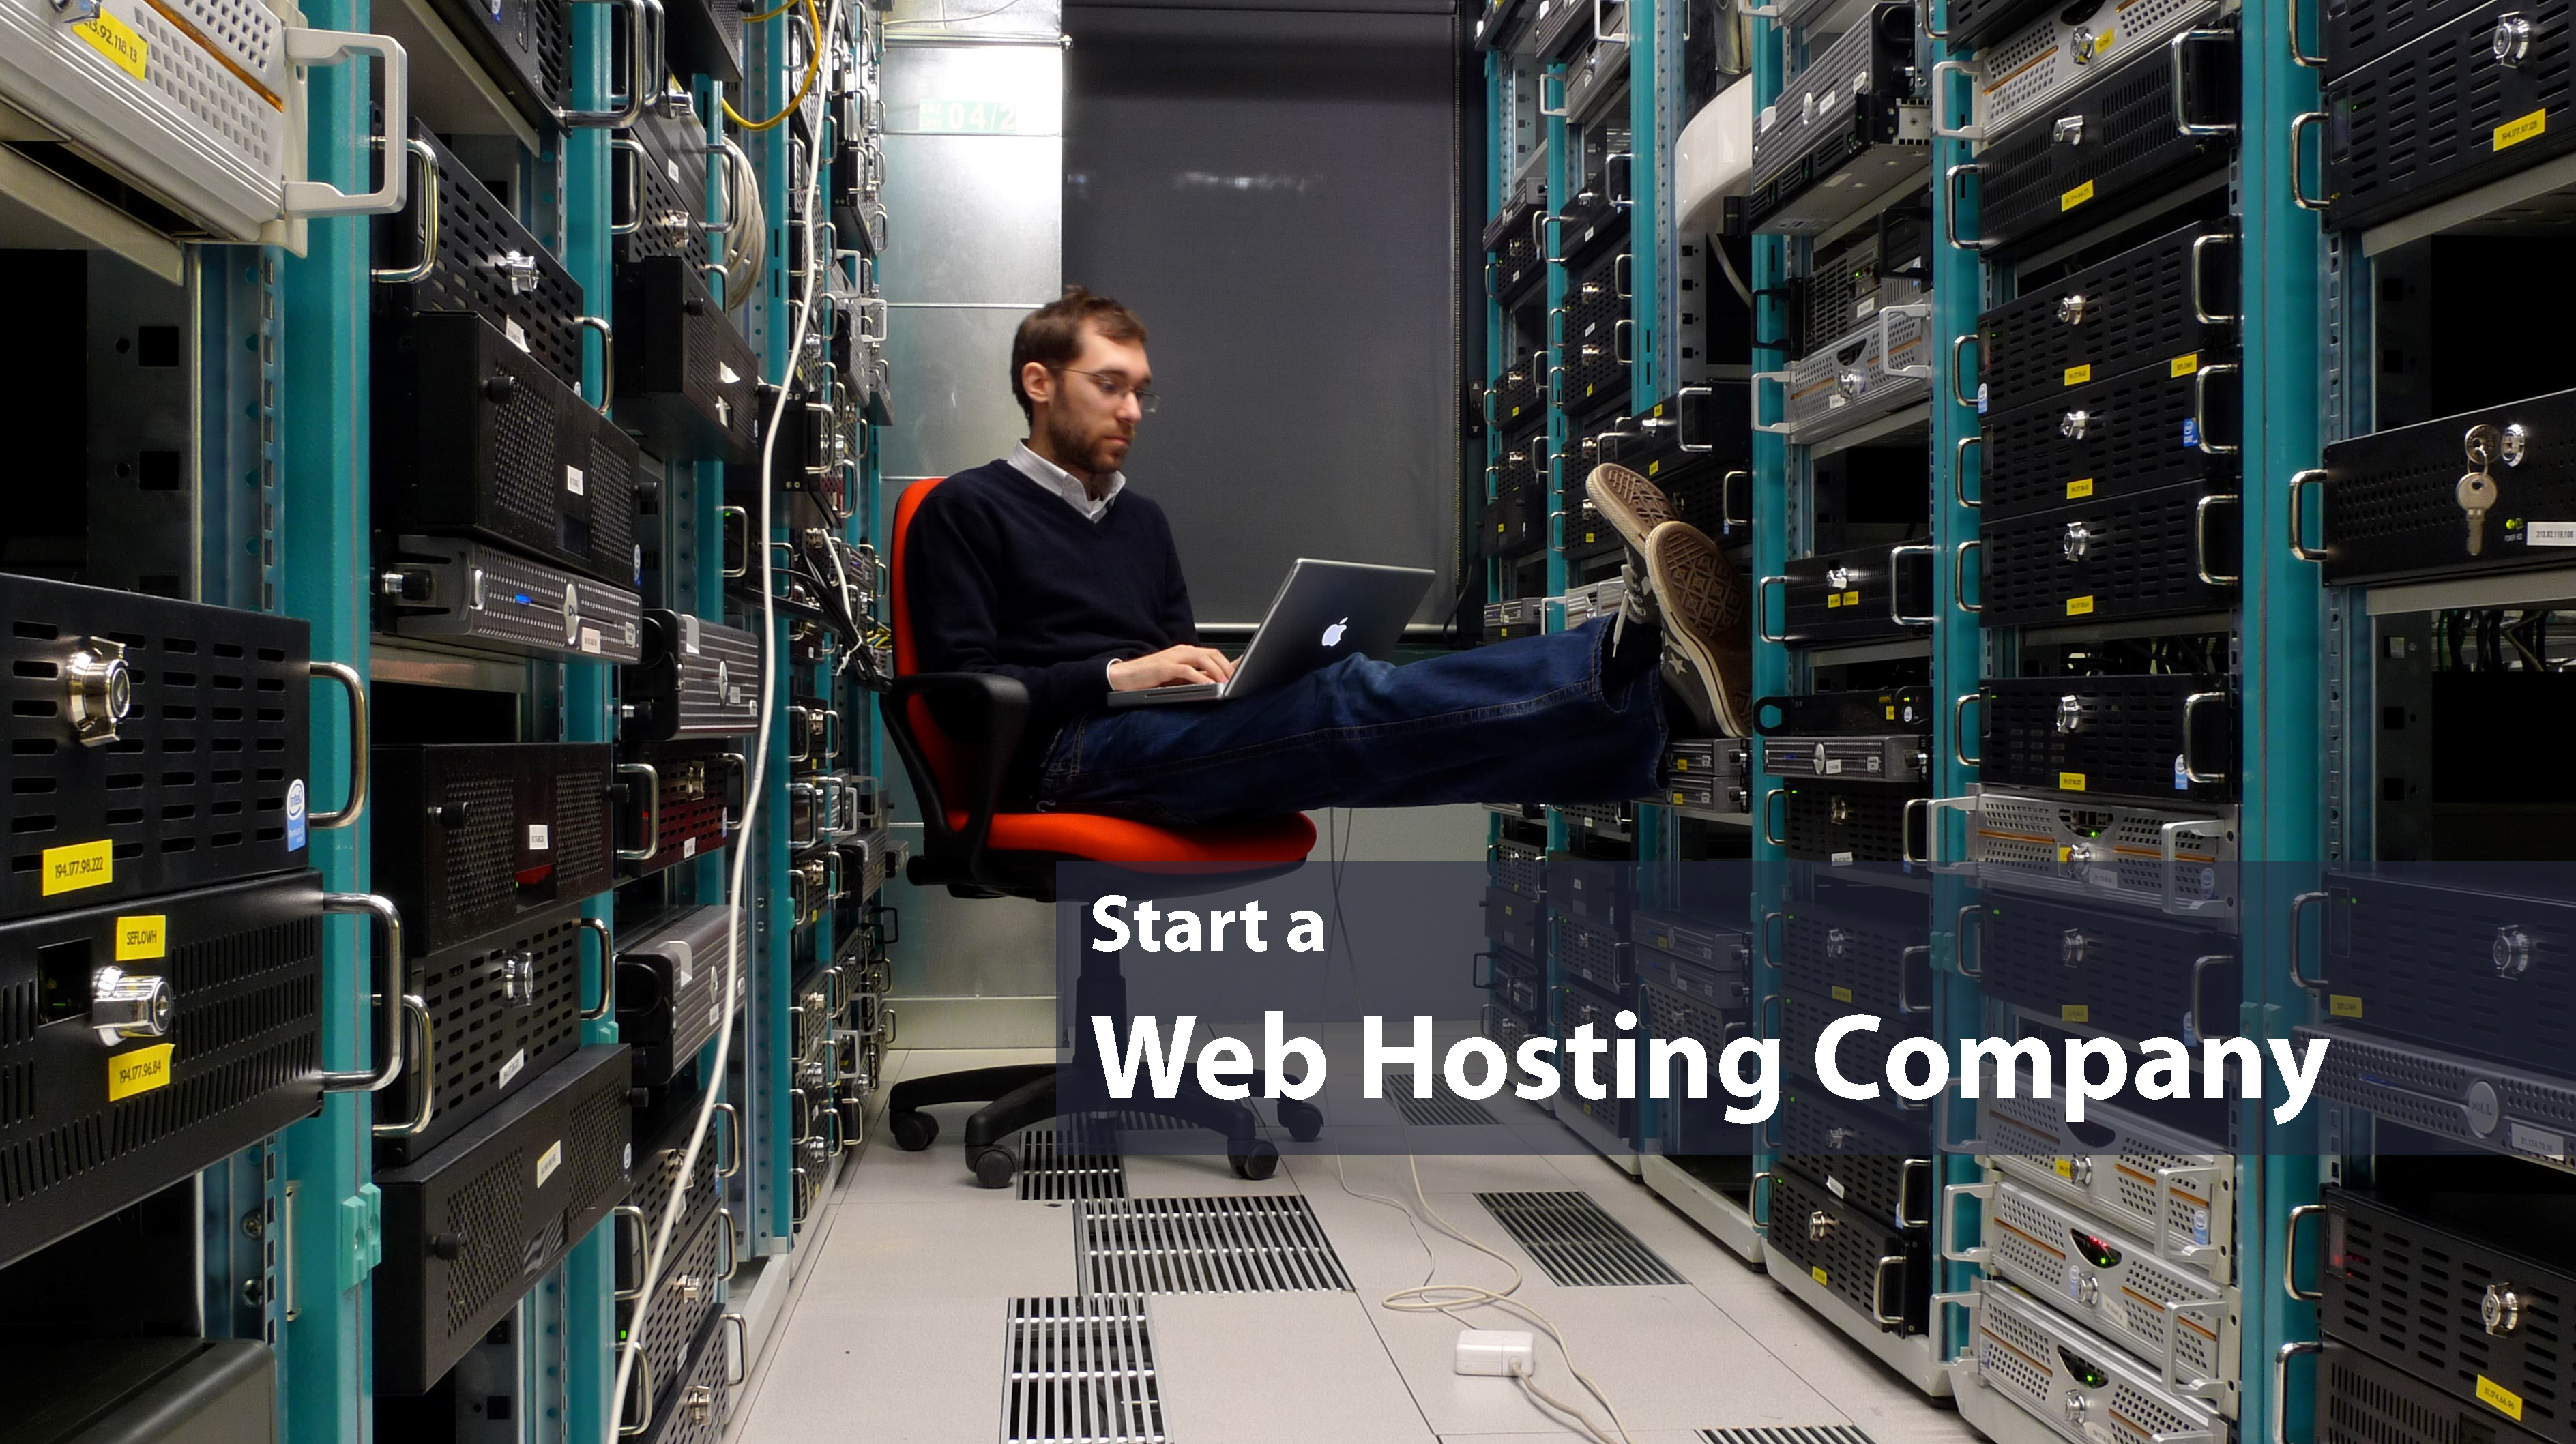 Choose WHMCS Themes for Launching A Web Hosting Business